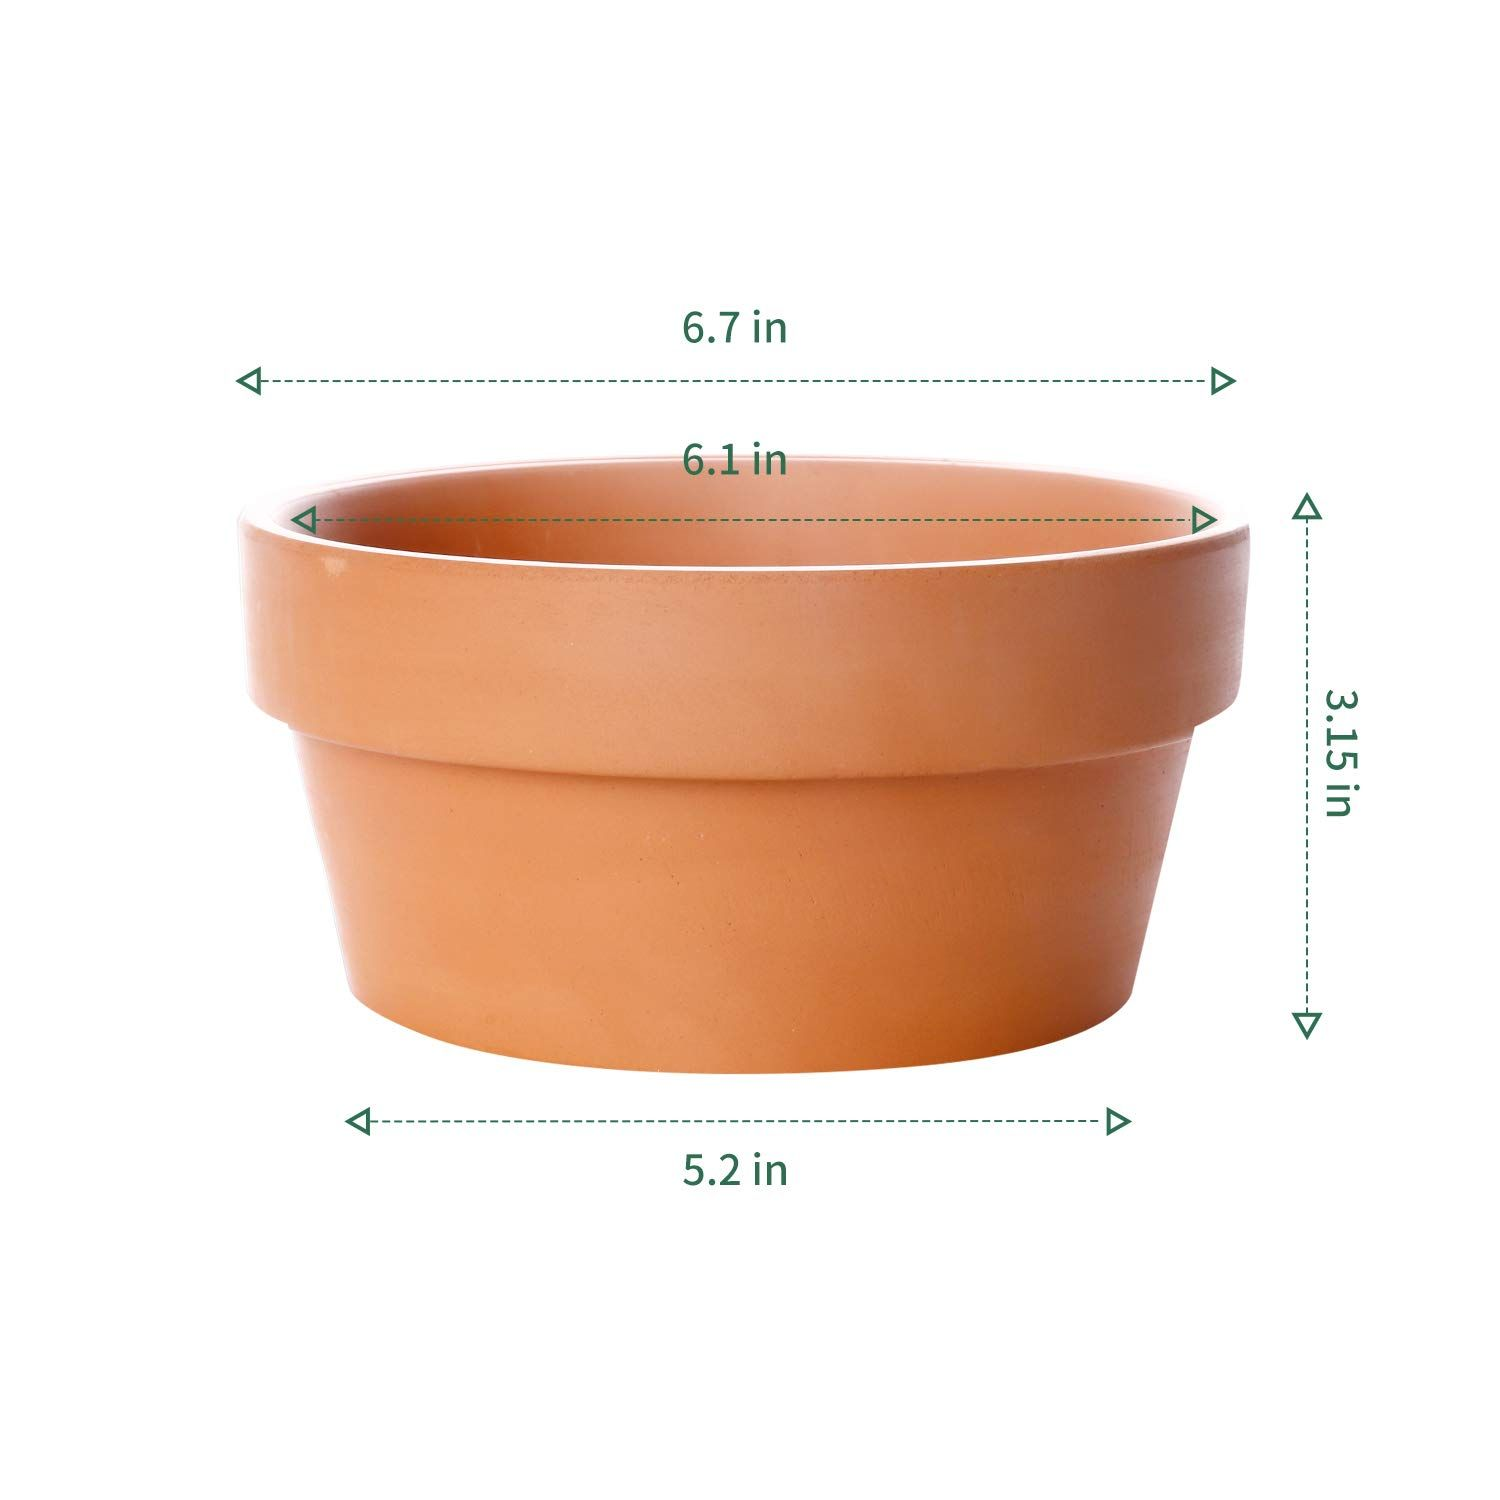 Potey Terracotta Shallow Planters For Succulent 6 1 Inch Cactus Plant Containers Indoor Garden Bonsai Pots Wi In 2020 Bonsai Garden Container Plants Shallow Planters